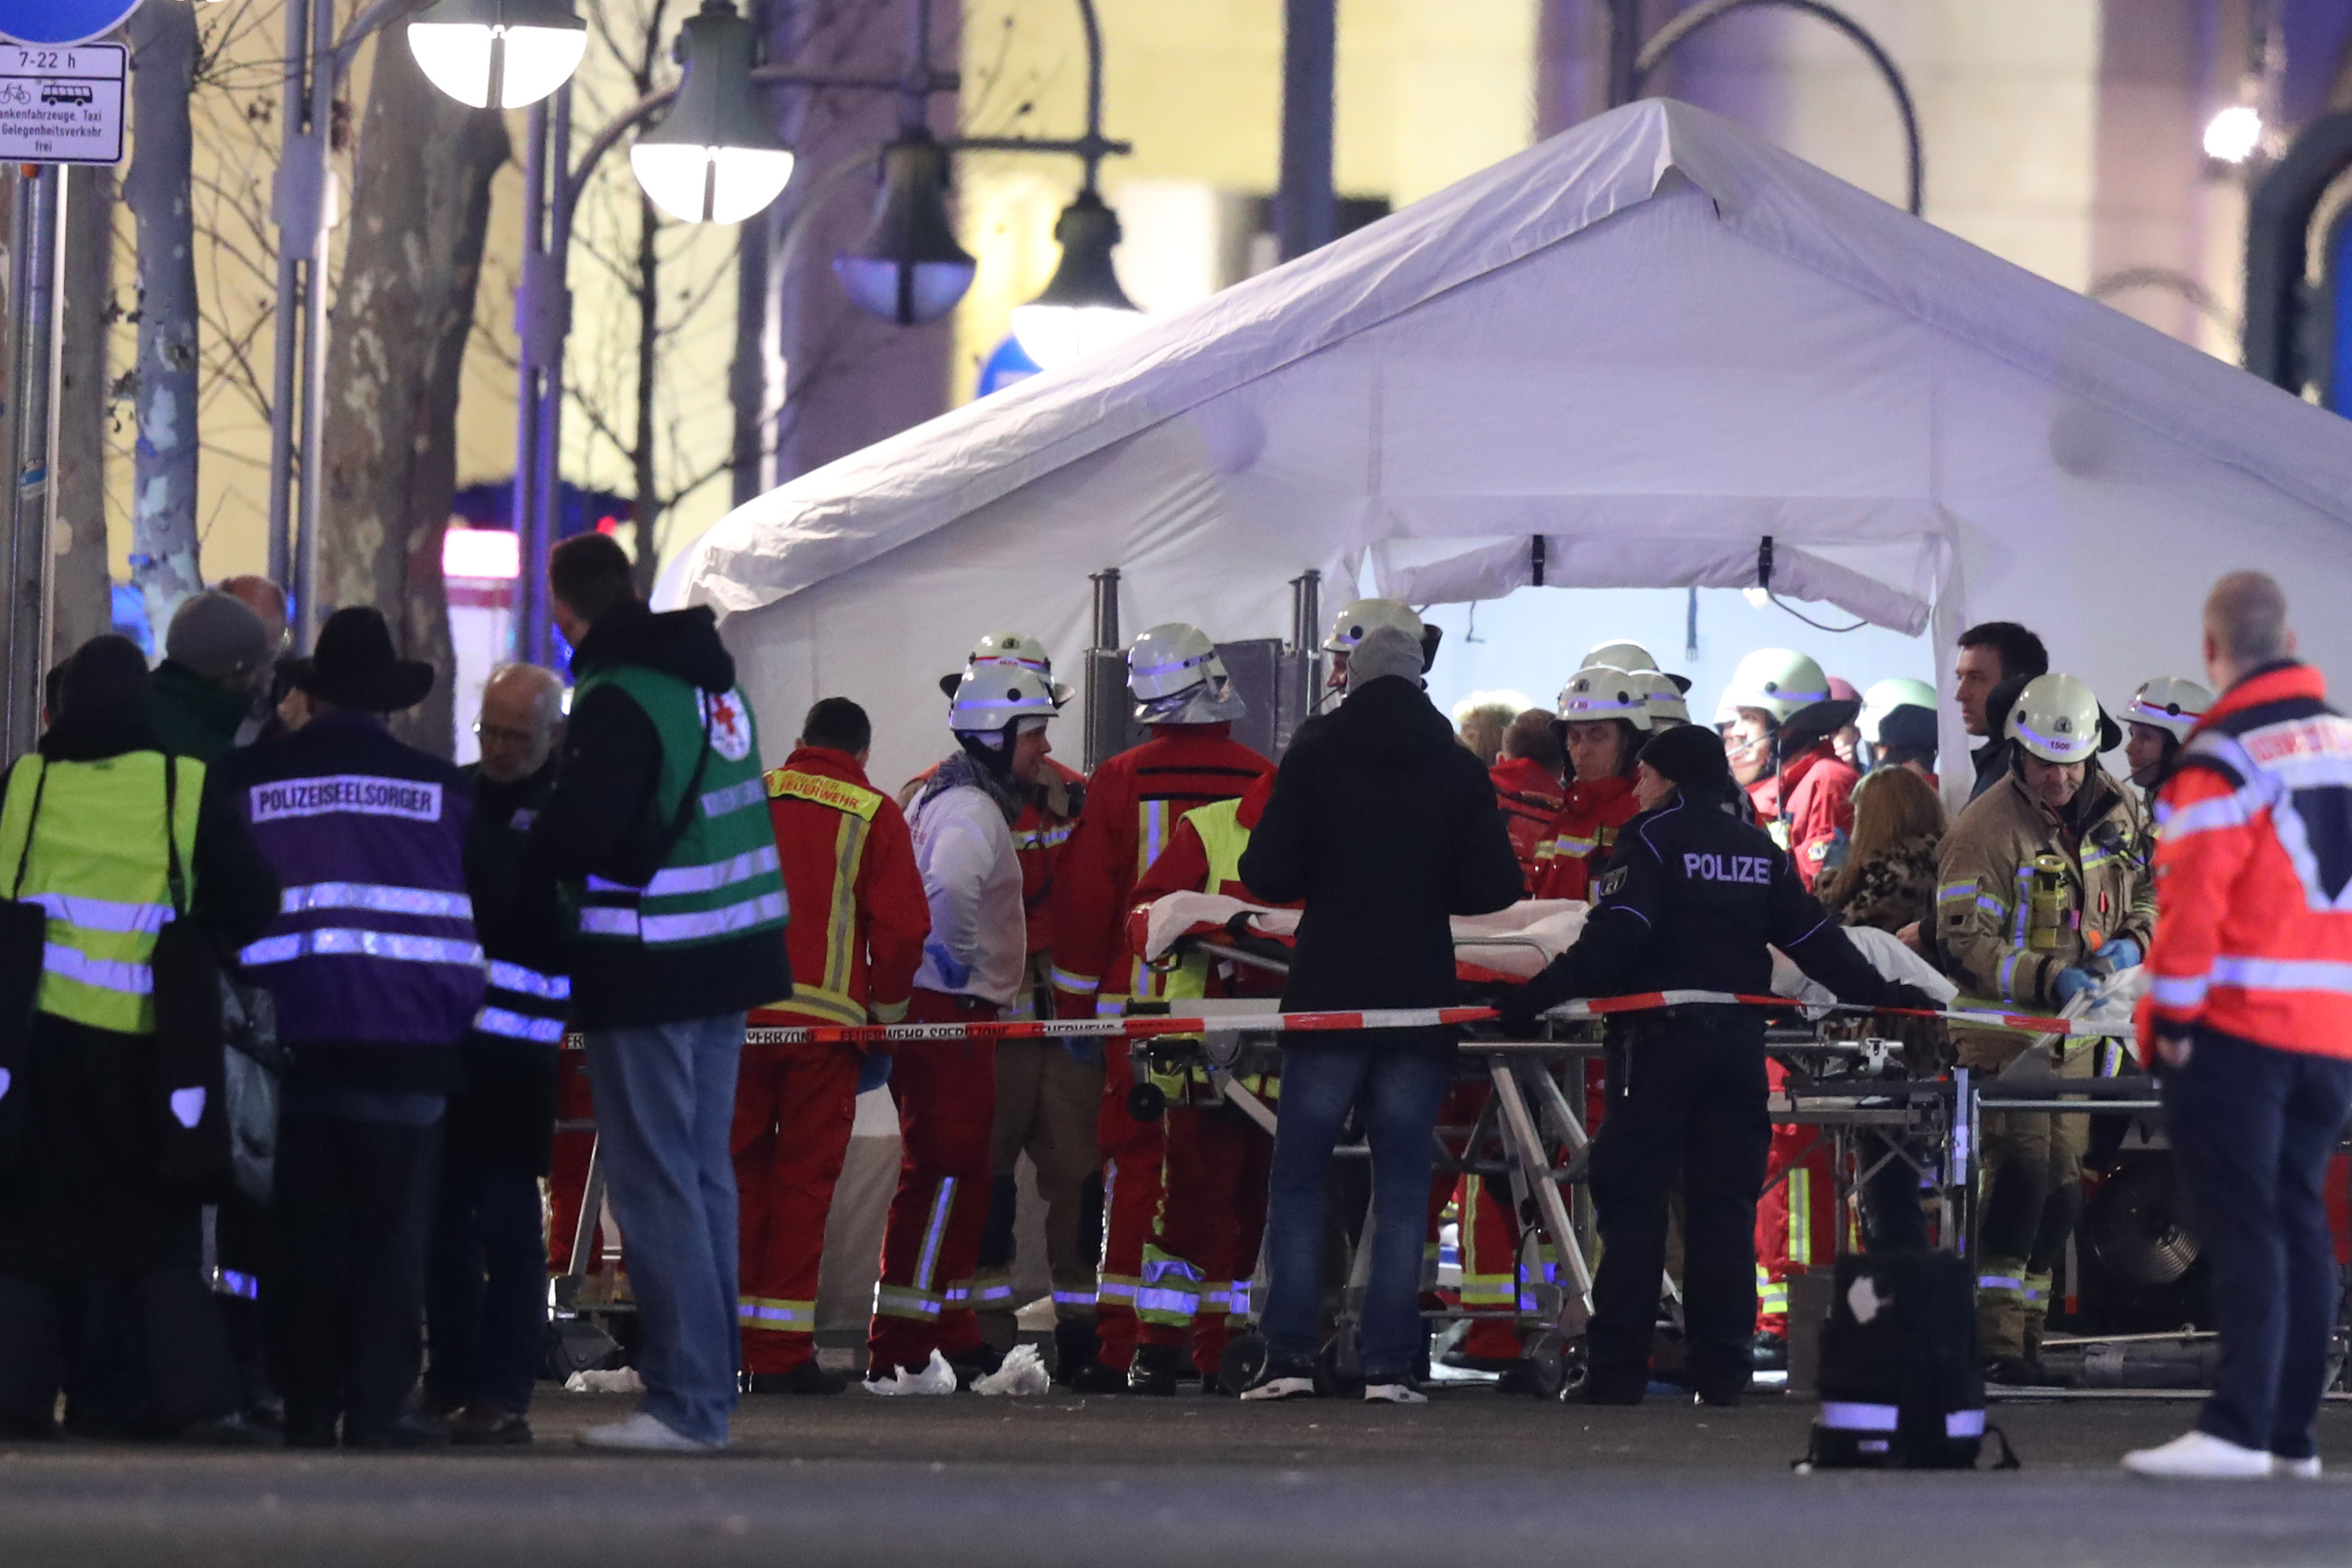 Rescue workers gather with stretchers outside a tent in the area after a lorry plowed through a Christmas market on December 19, 2016 in Berlin, Germany.